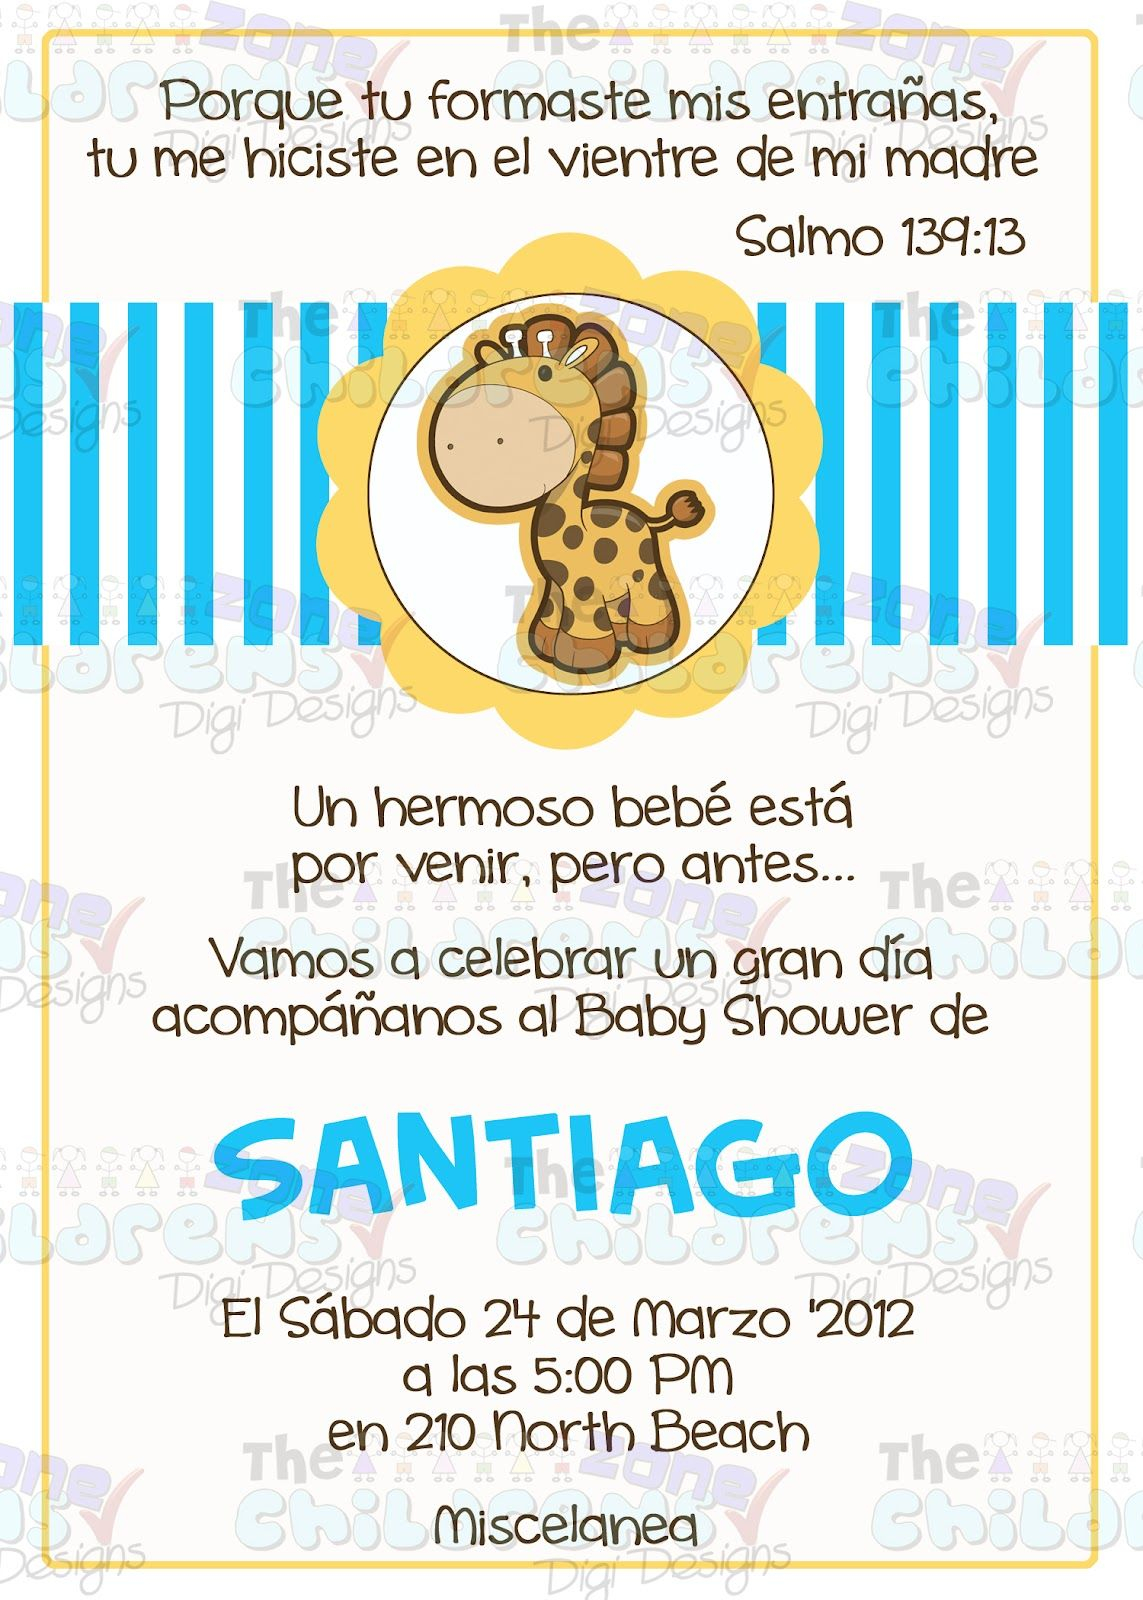 Fancy Invitaciones Para Baby Shower Preparation Tips For Mommy-To-Be intended for Review Invitaciones Para Baby Shower De Niño